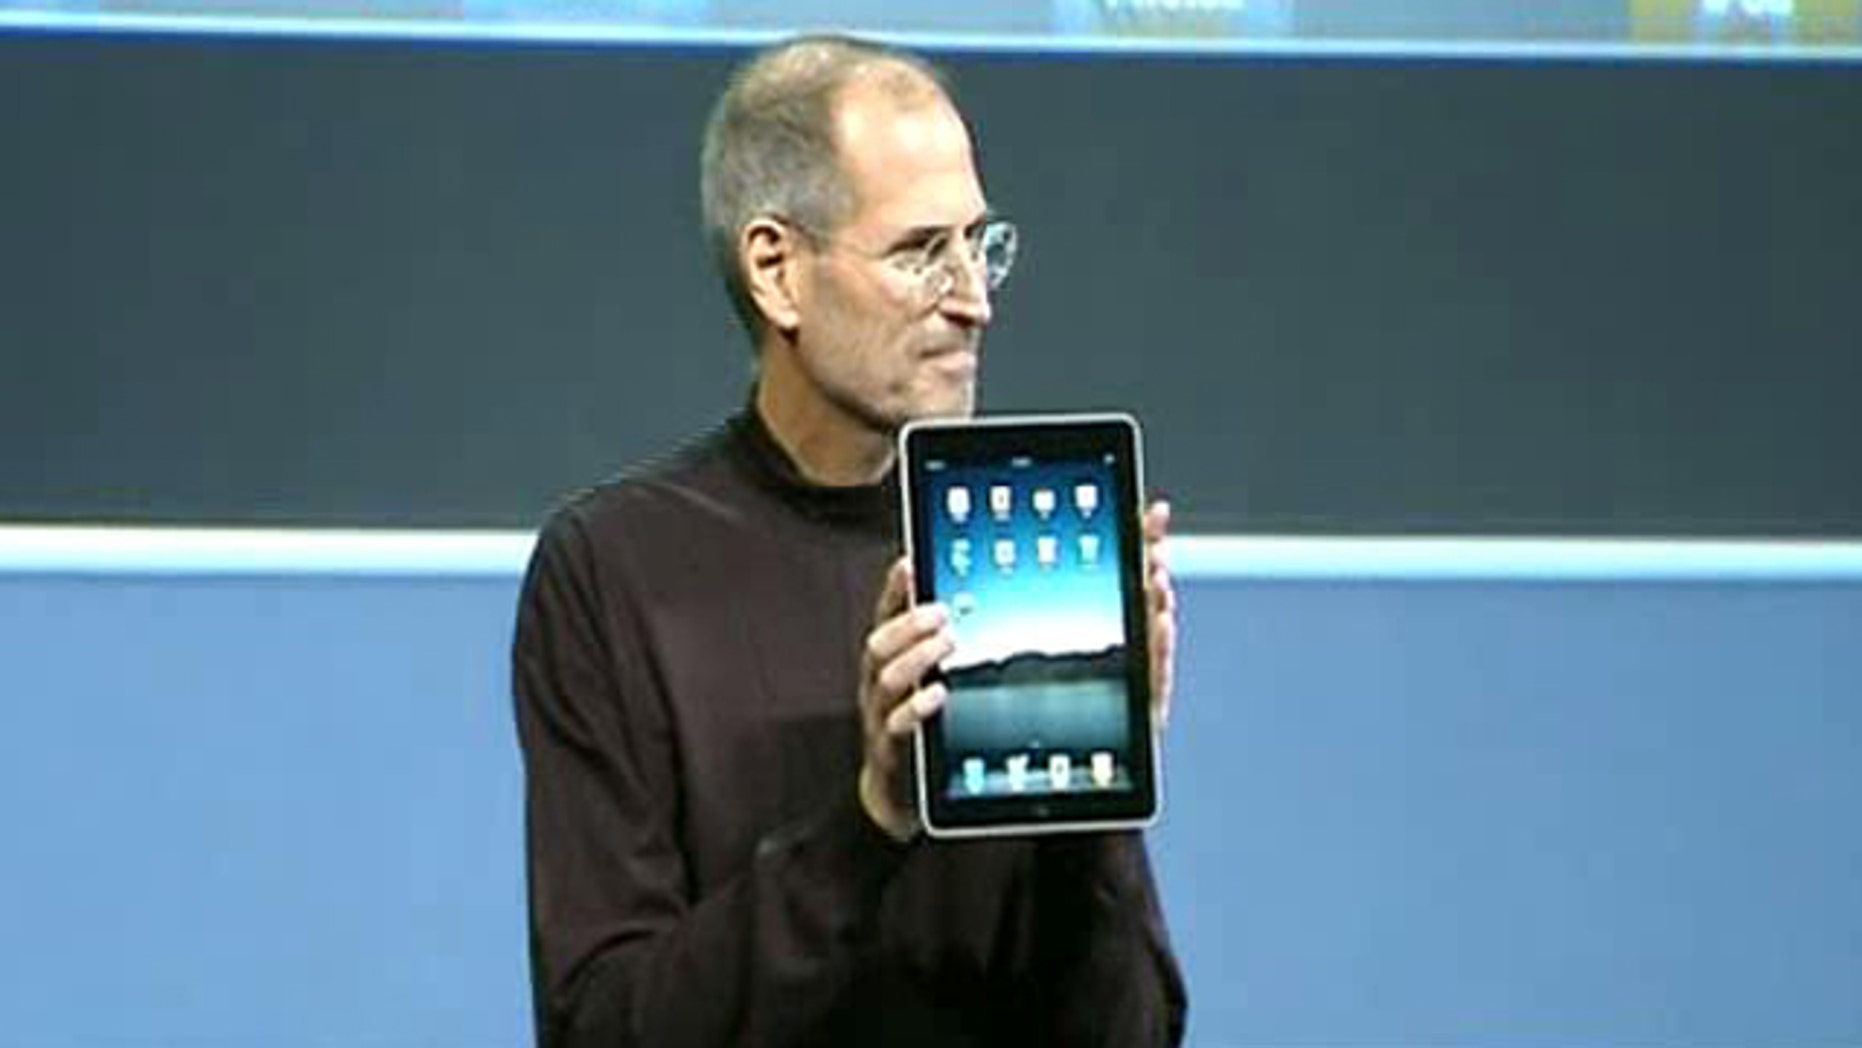 During his keynote speech, Steve Jobs shows off the iPad at its January debut.